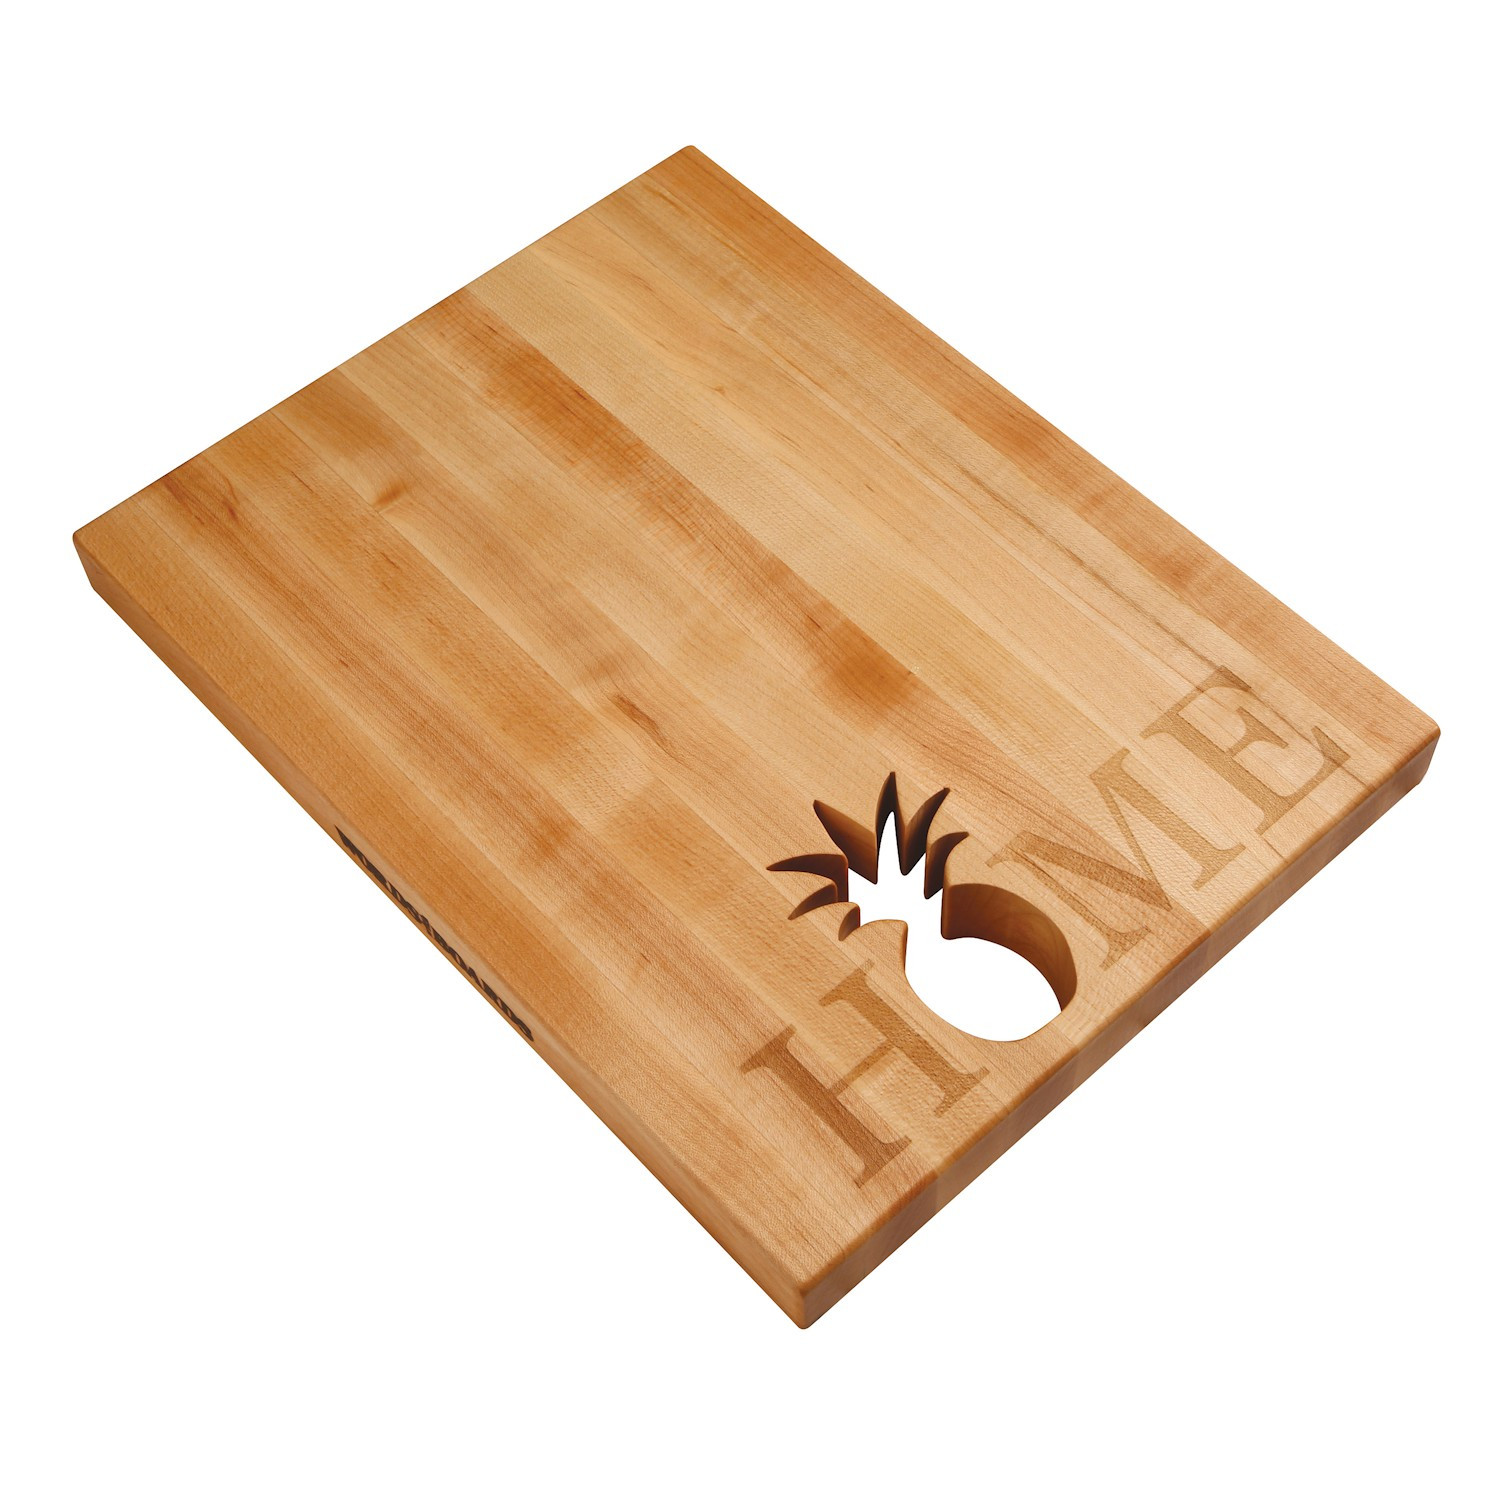 Maple Hardwood Cutting Board Quot Home Quot Amp Pineapple Accent